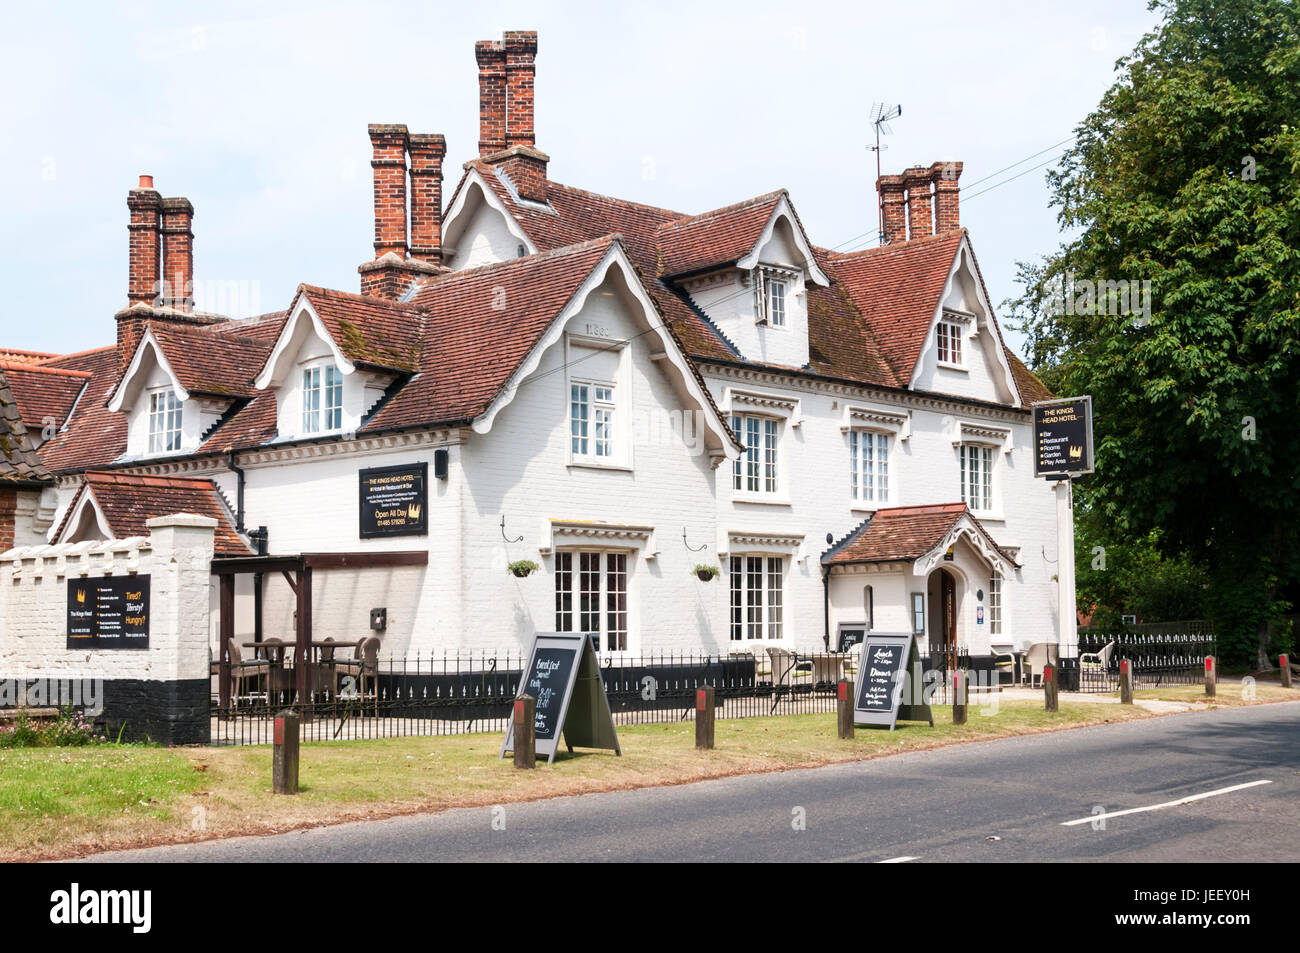 The Kings Head Hotel at Great Bircham in Norfolk - Stock Image